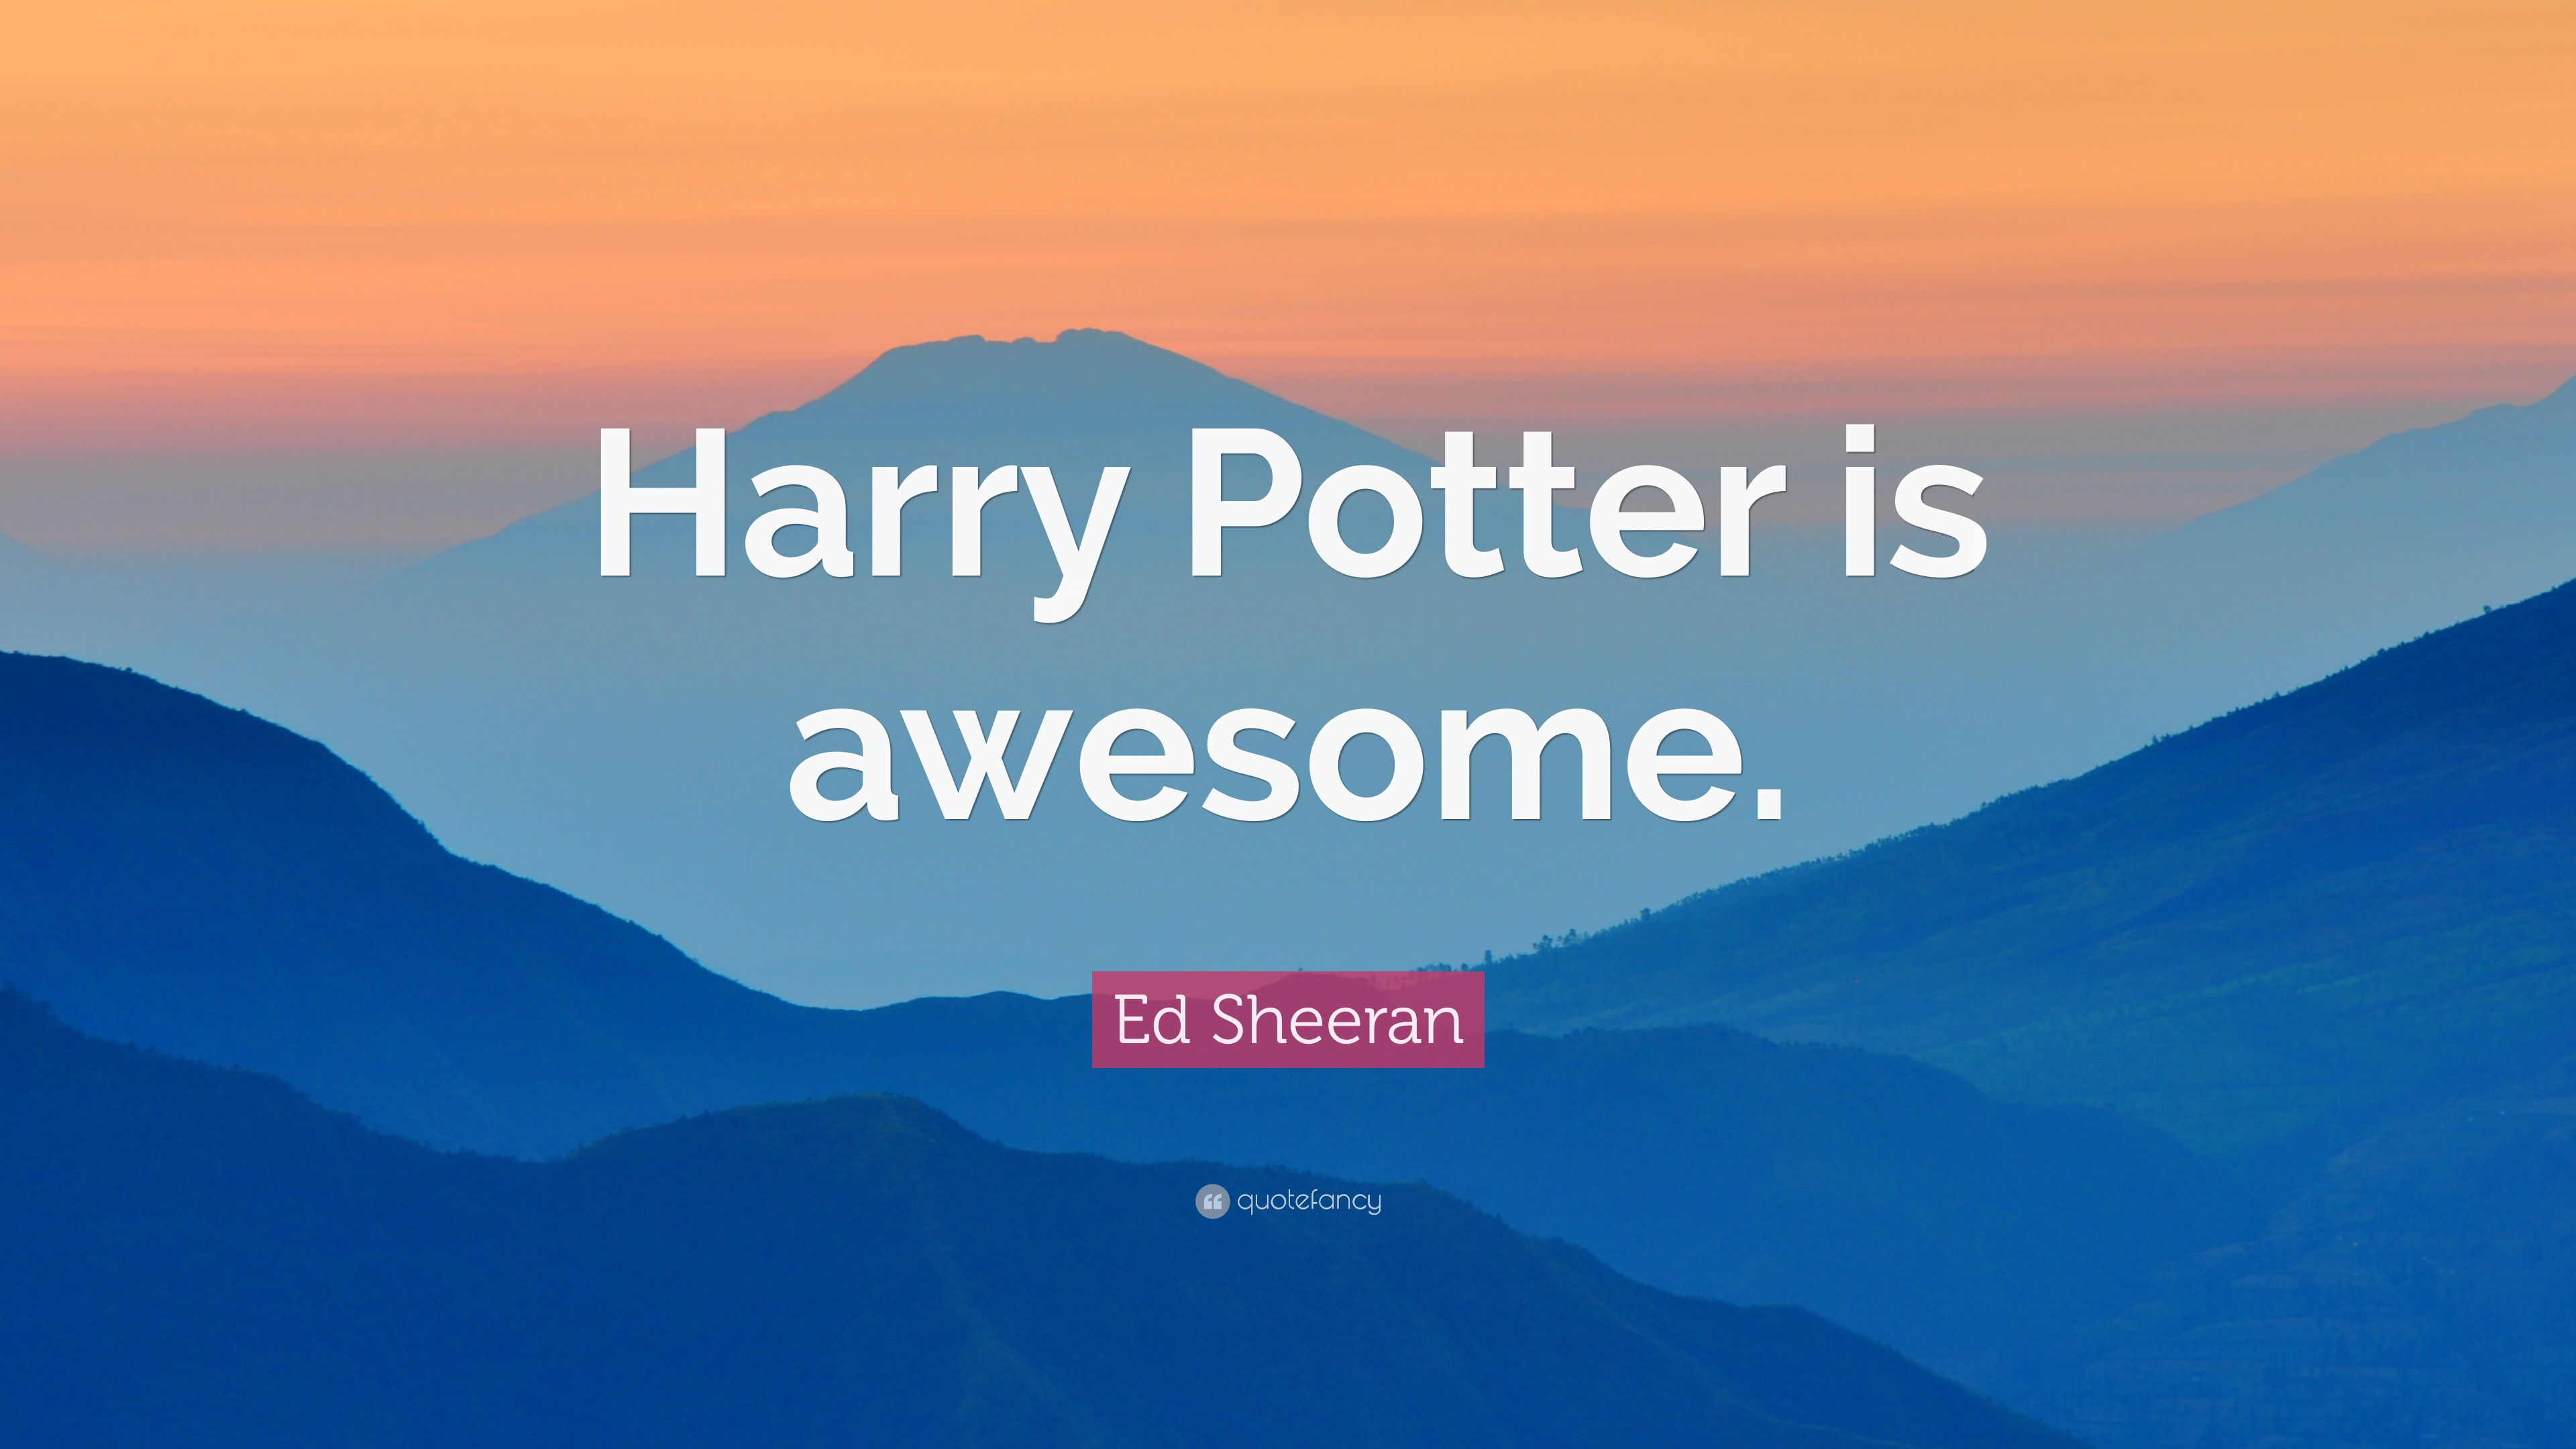 Most Inspiring Wallpaper Harry Potter Blue - 1091919-Ed-Sheeran-Quote-Harry-Potter-is-awesome  Collection_47388.jpg